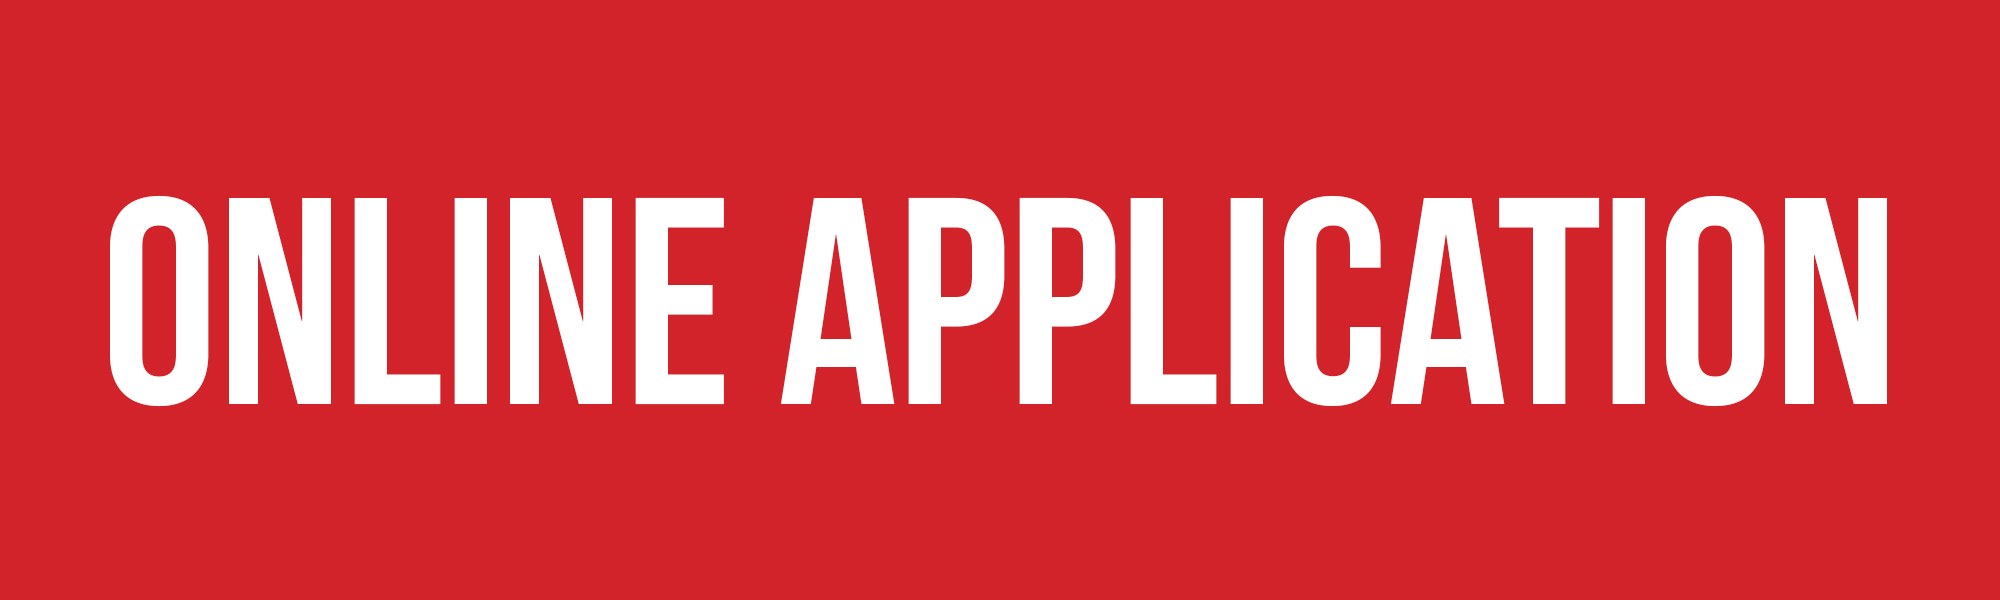 "Red background with ""Online Application"""